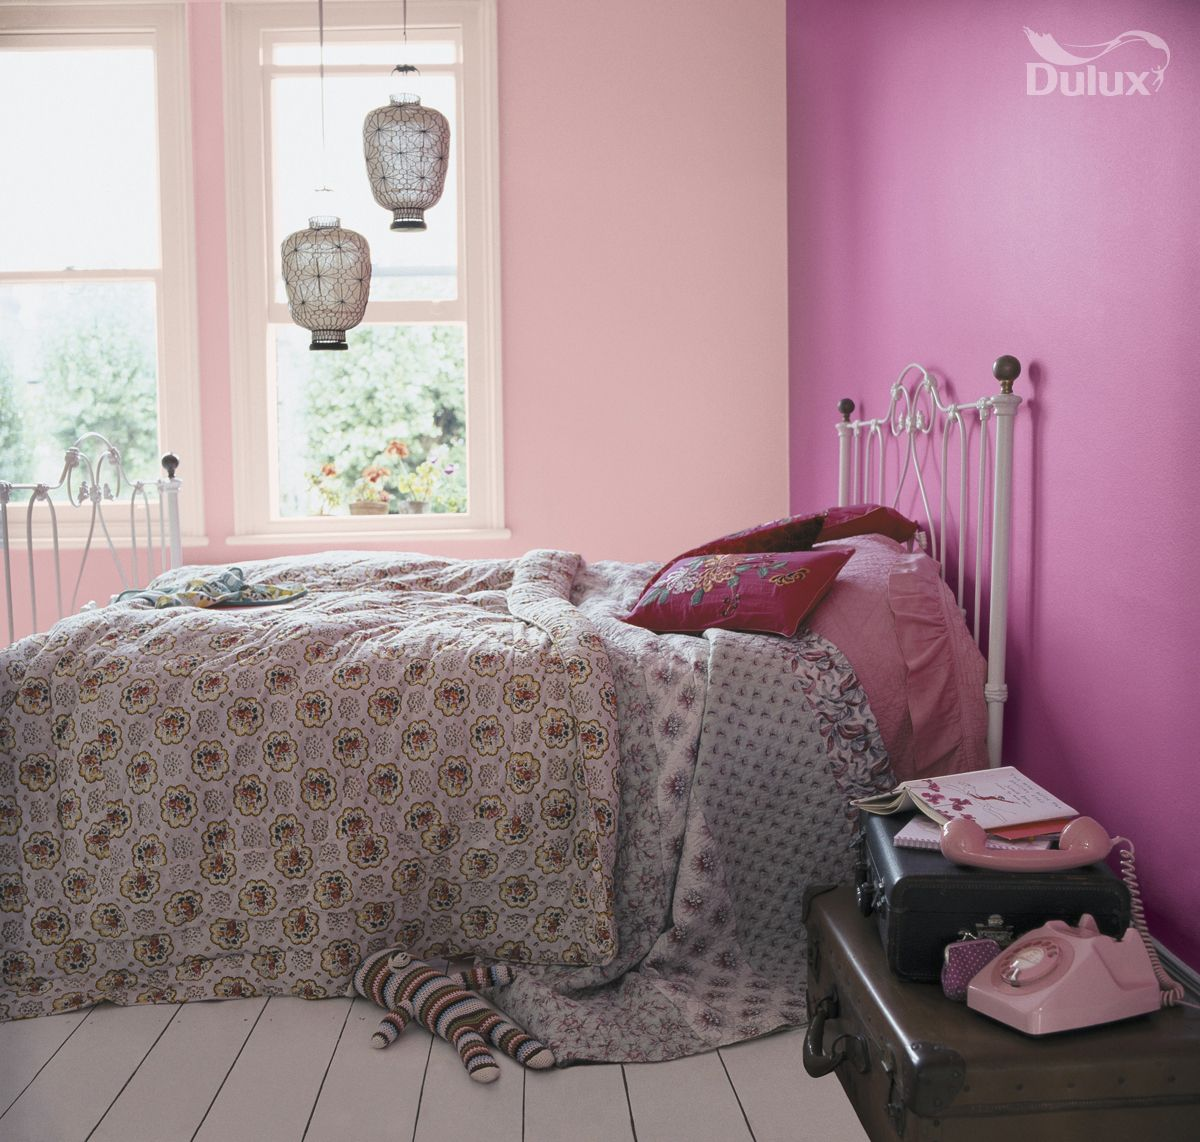 Pink Bedroom Ideas That Can Be Pretty And Peaceful Or: Playful Pinks Can Be A Unique Alternative To Statement